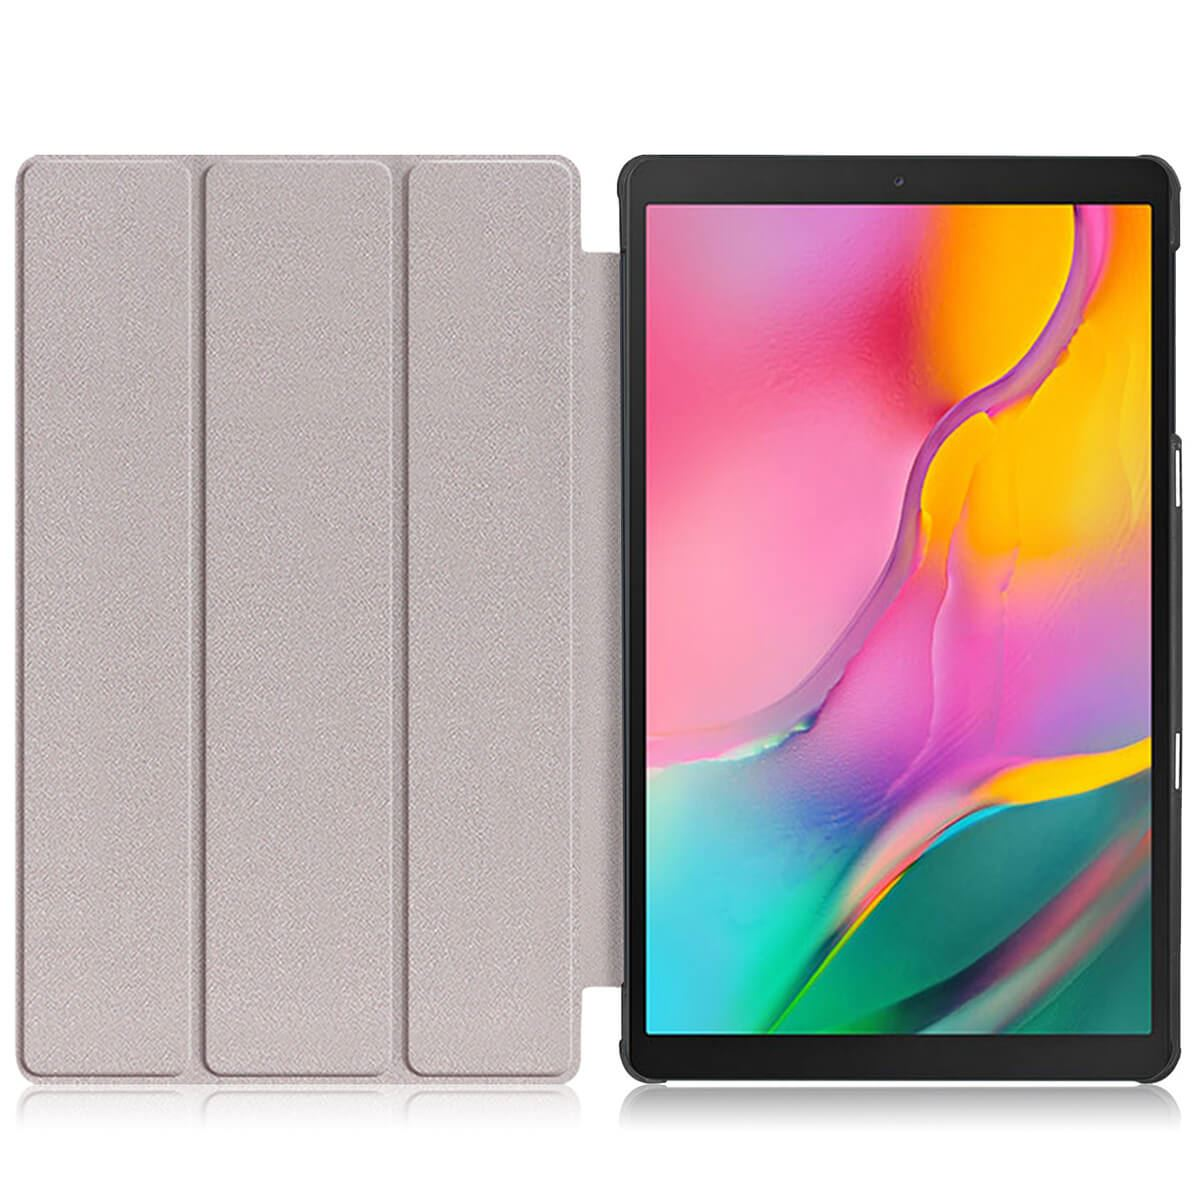 Flip-Cover-Trifold-Case-For-T510-T515-Samsung-Galaxy-Tab-A-2019-10-1-Full-Body thumbnail 15